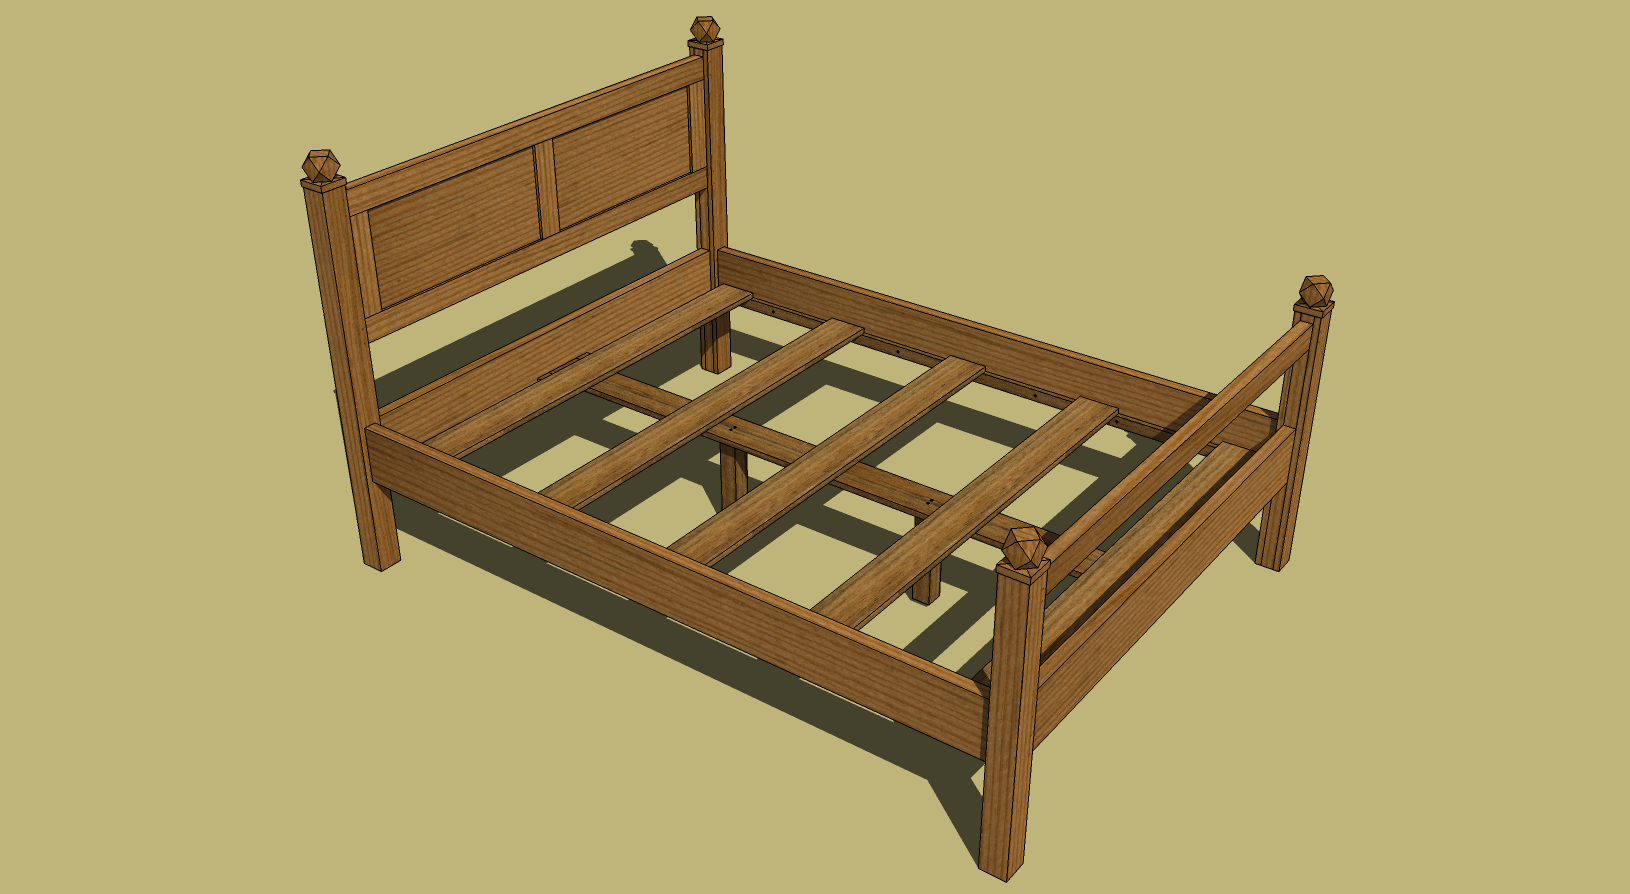 18 inch doll furniture woodworking plans